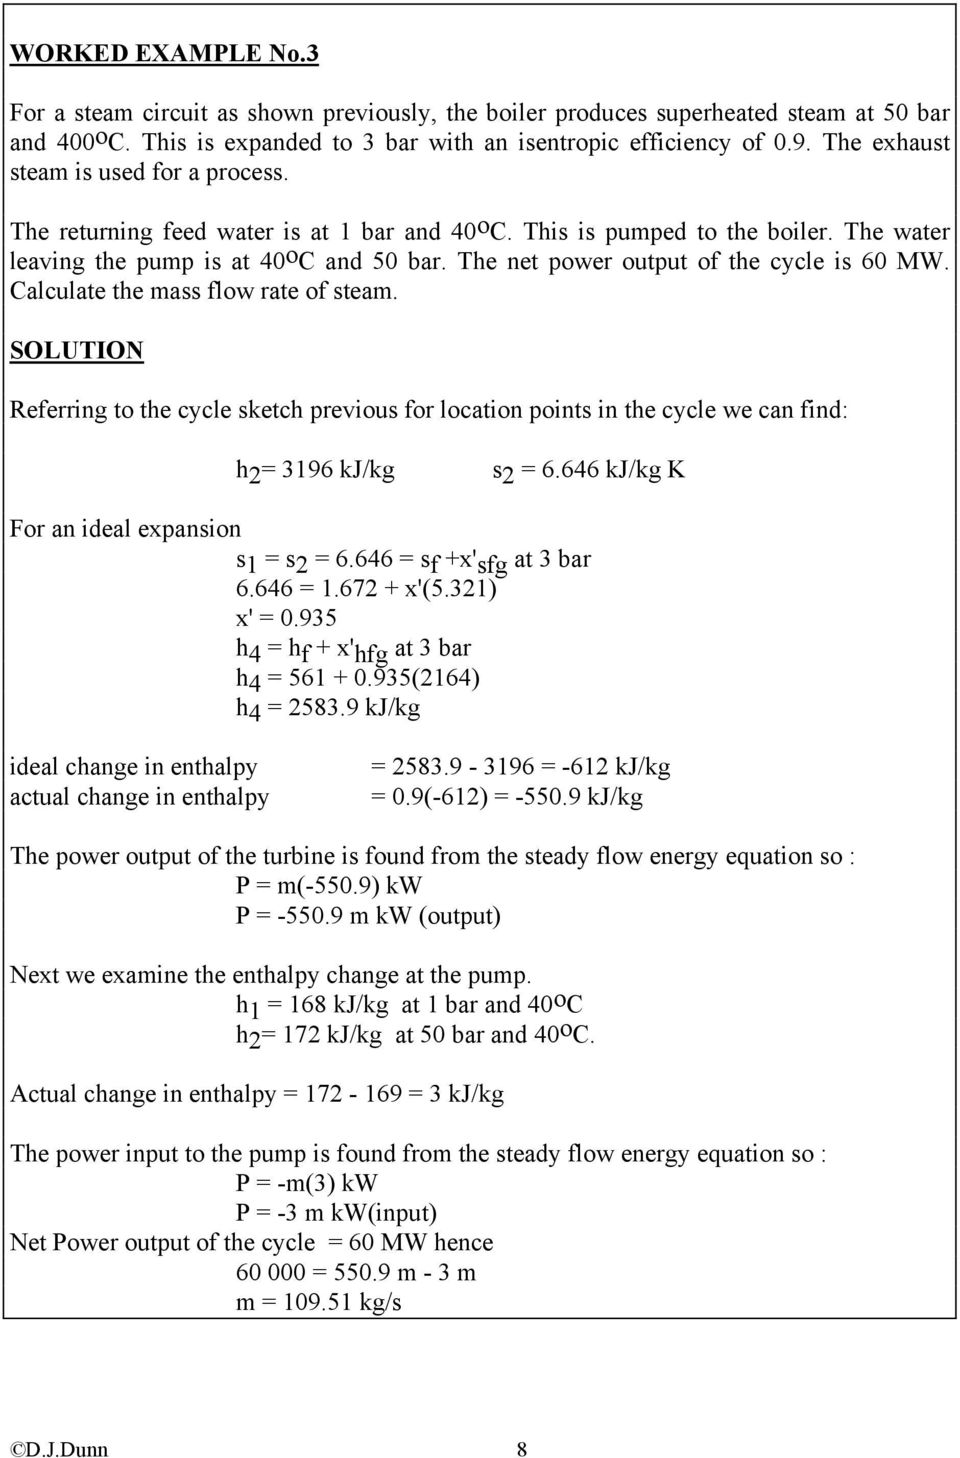 The net power output of the cycle is 60 MW. Calculate the mass flow rate of steam.